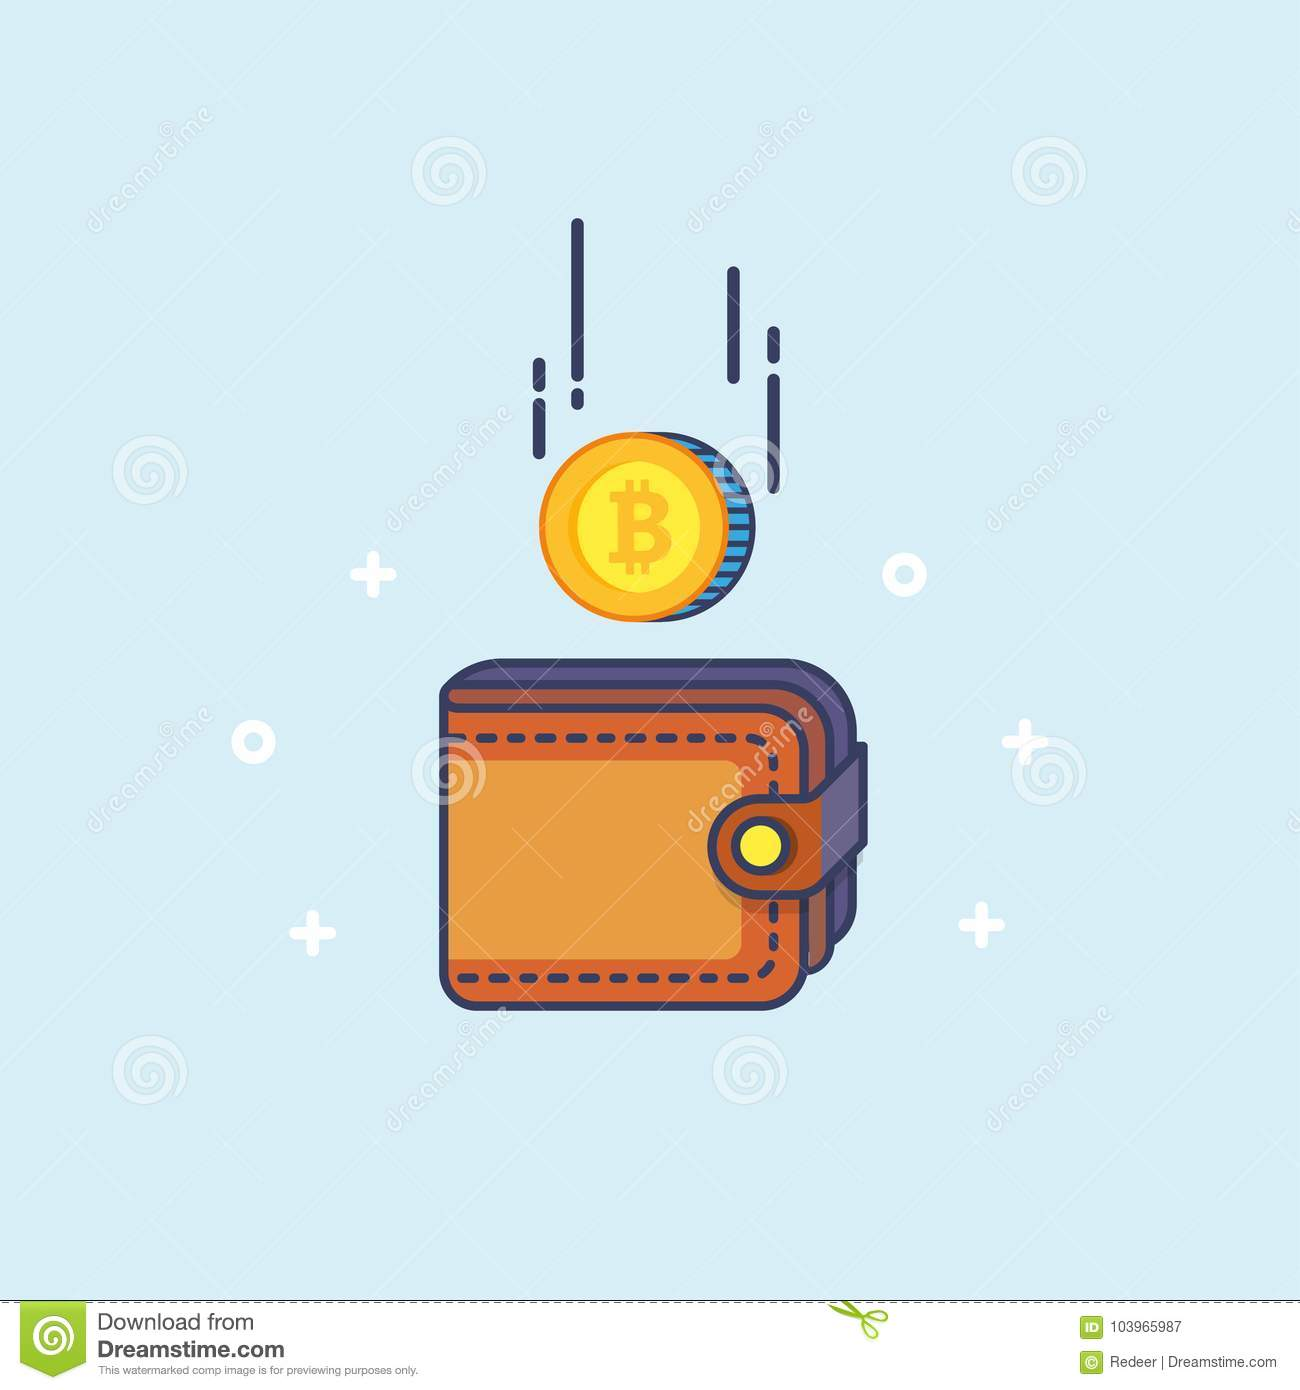 market wallet cryptocurrency